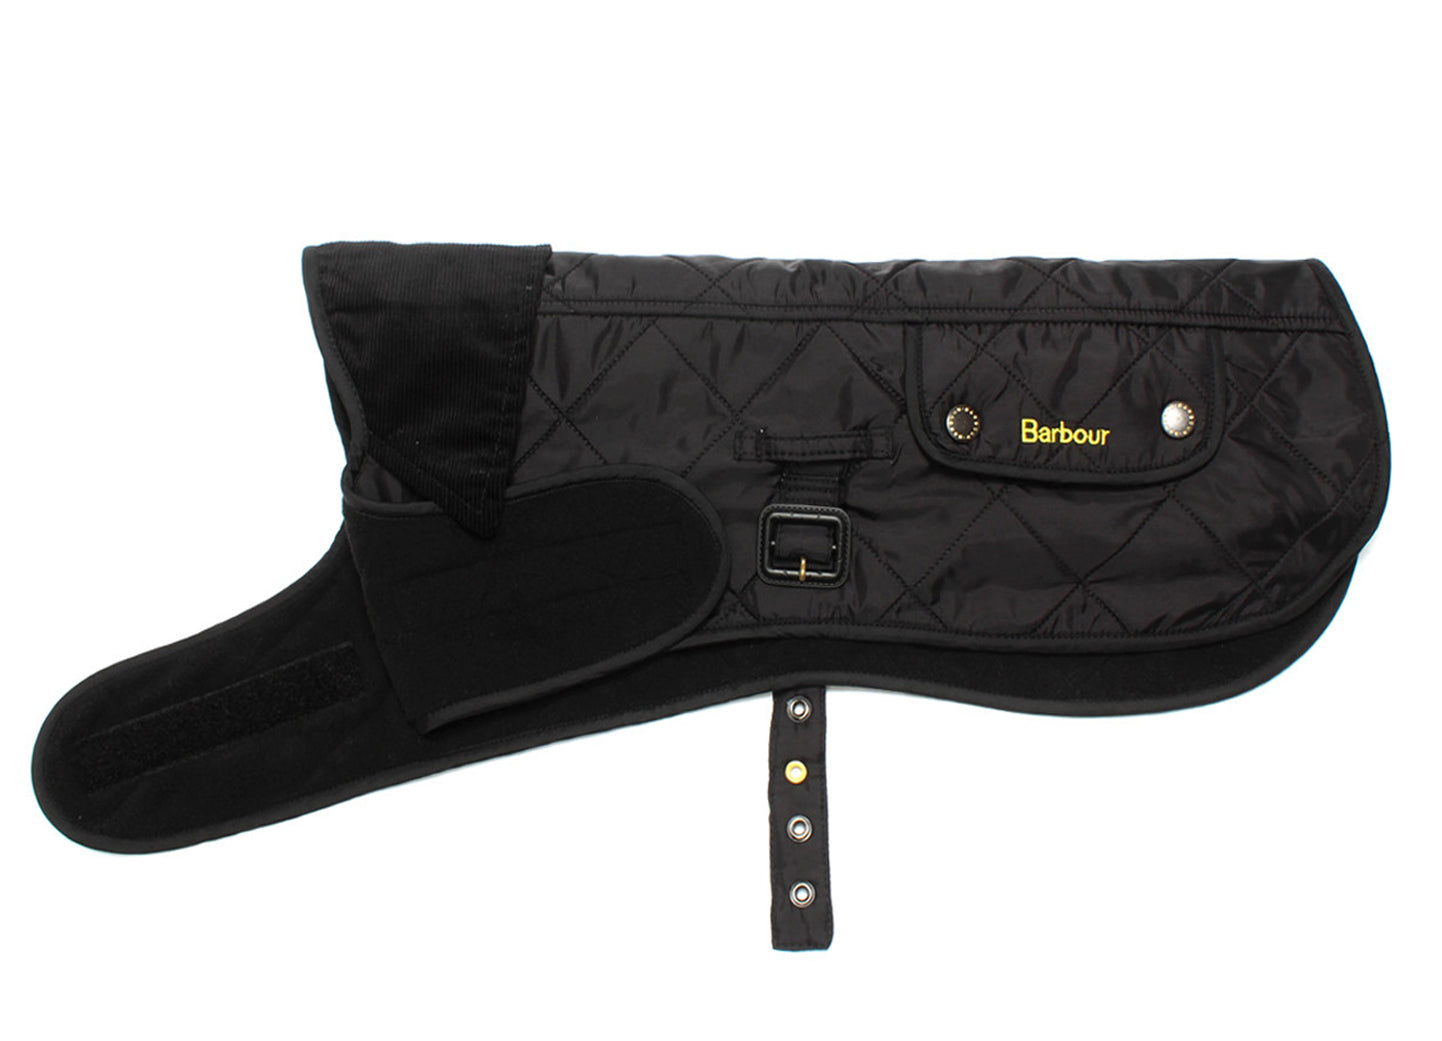 Barbour Polar Quilted Dog Coat - North Shore Saddlery